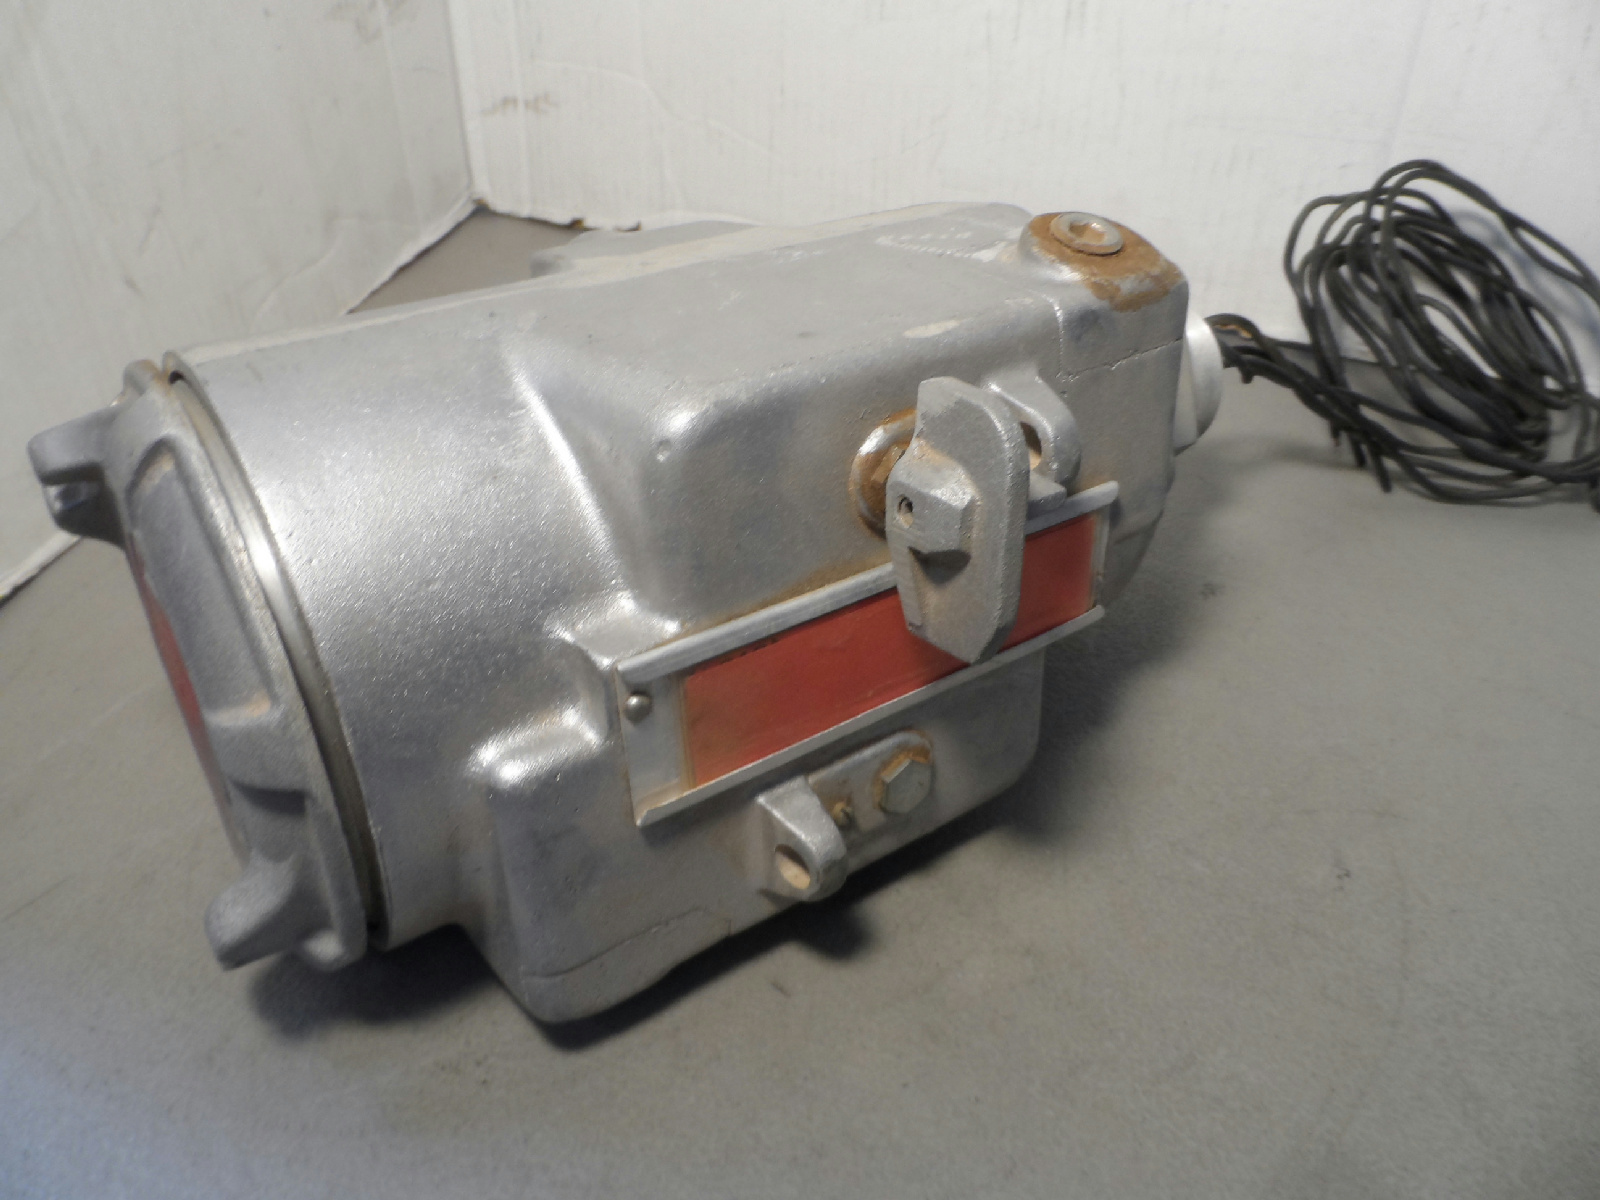 Crouse-Hinds Explosion Proof Enclosure and similar items